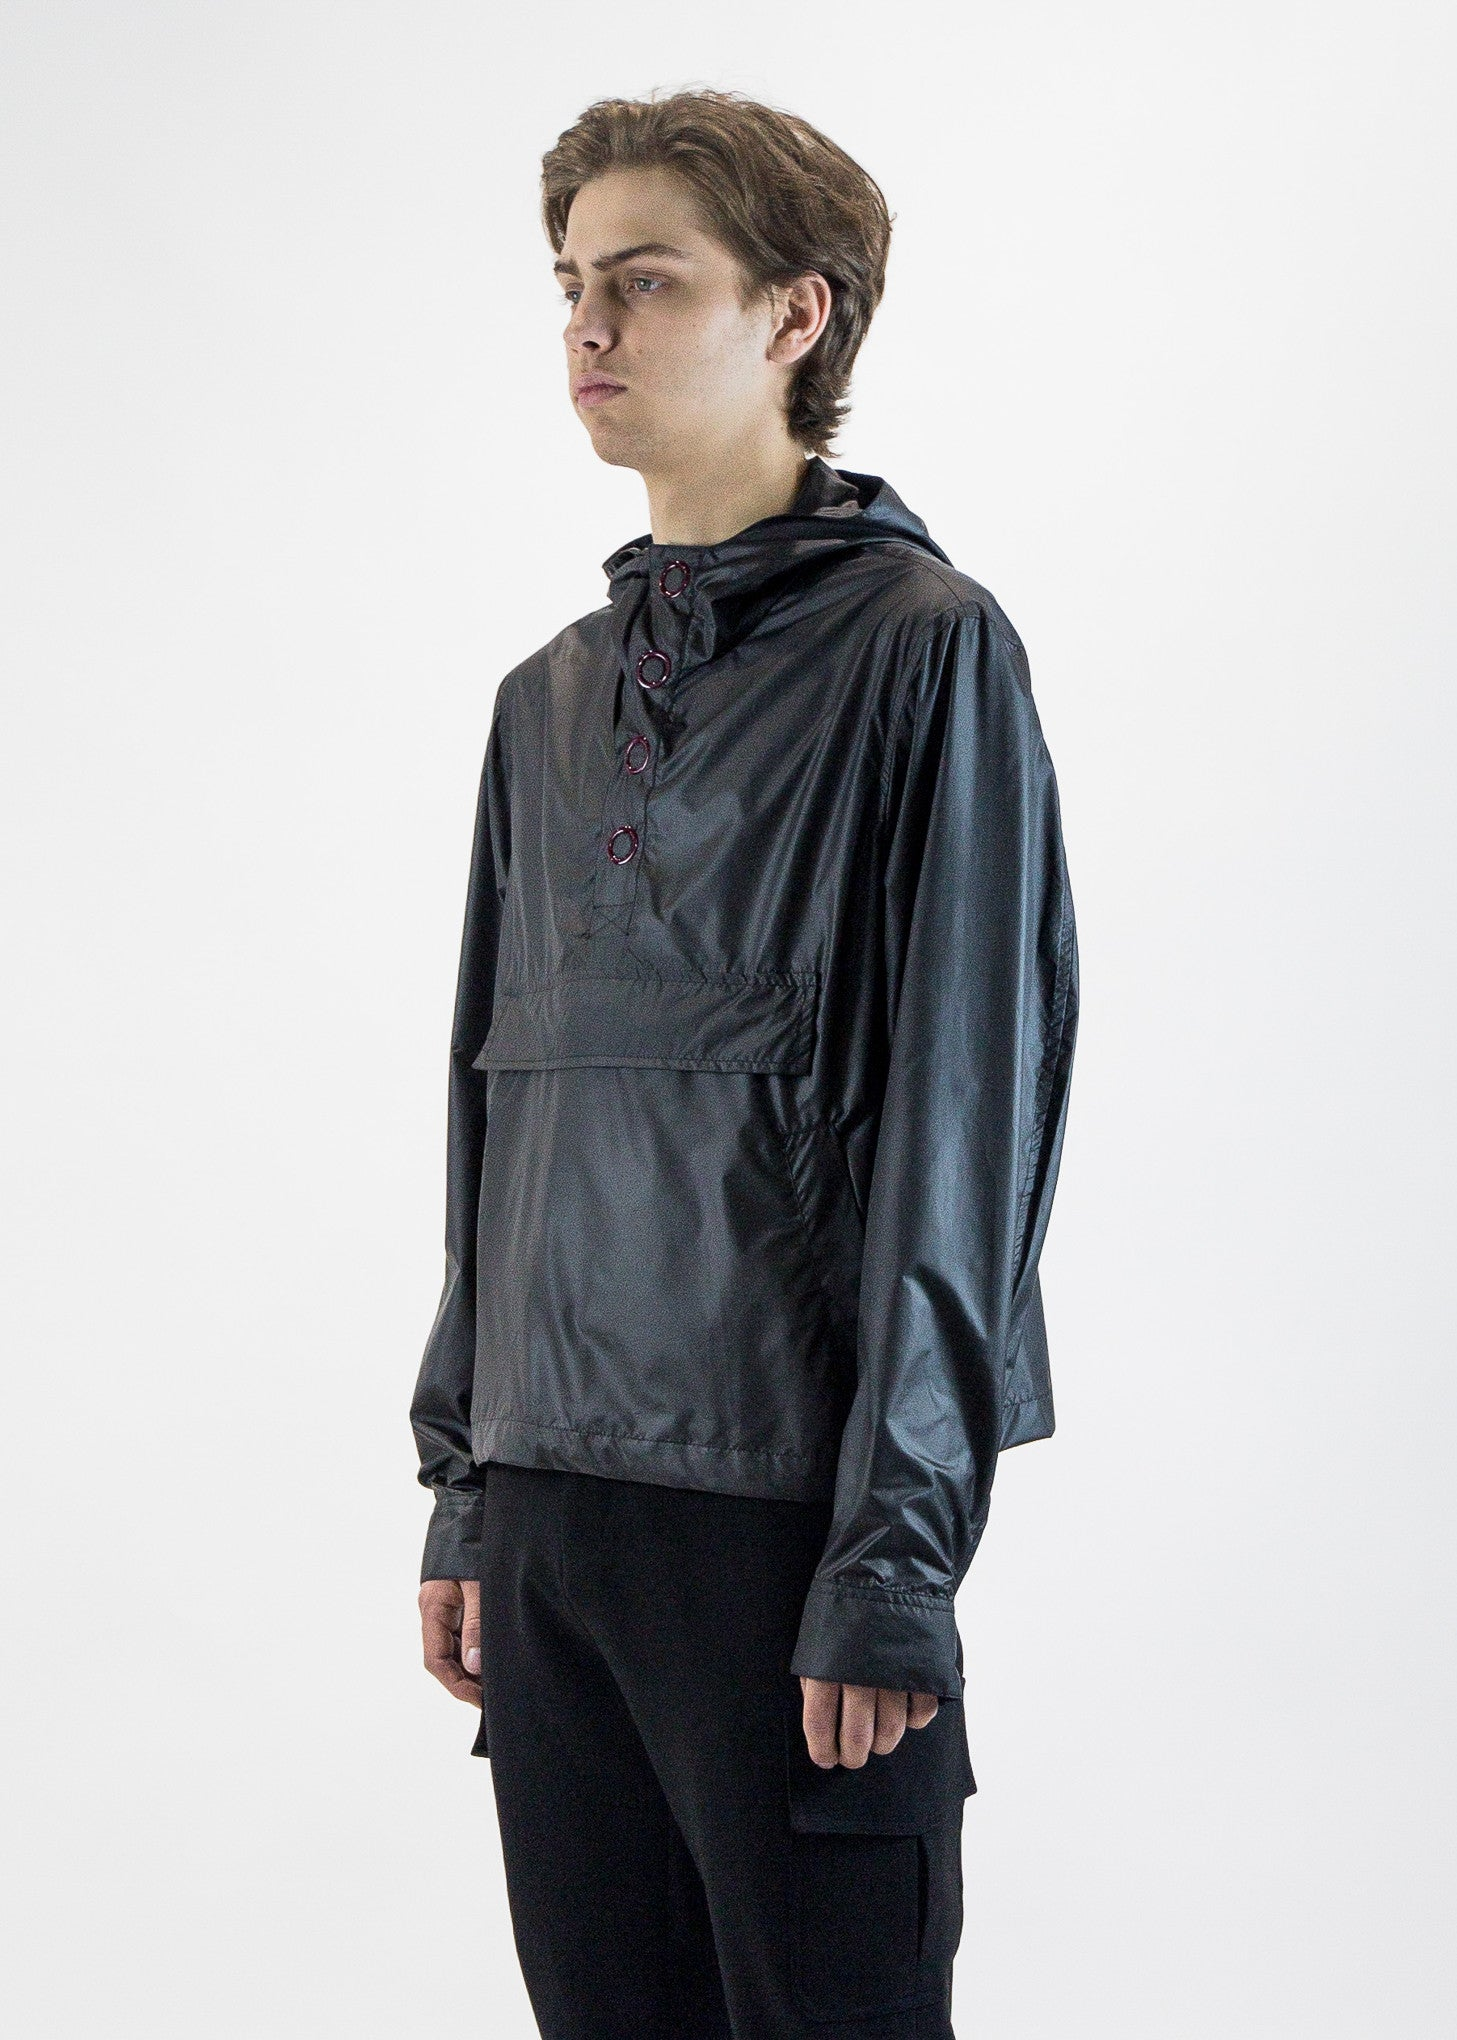 cmmn swdn mens black Ry Technical Anorak